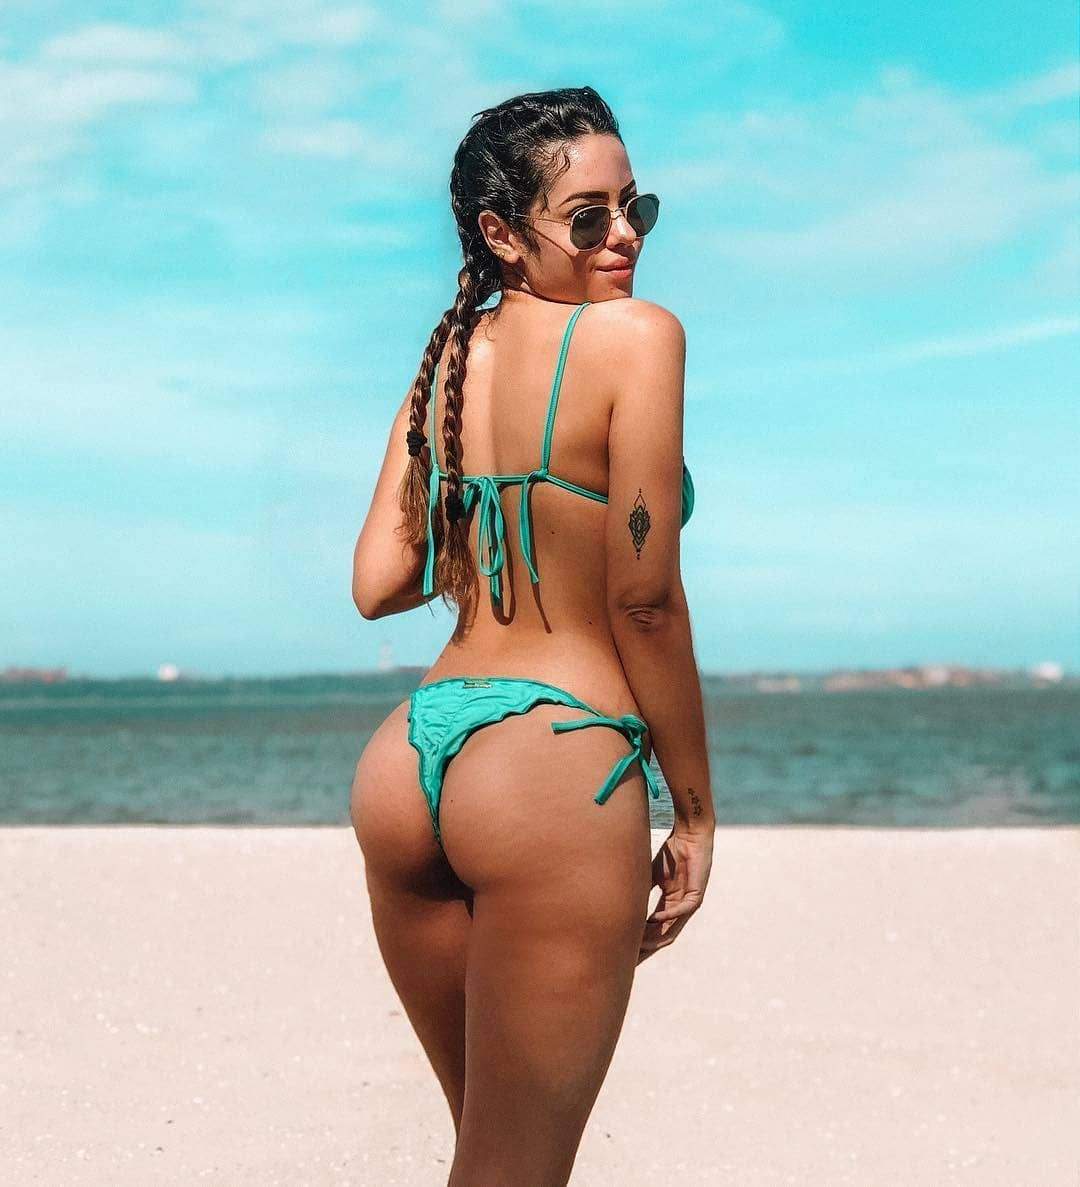 colombian girl hot